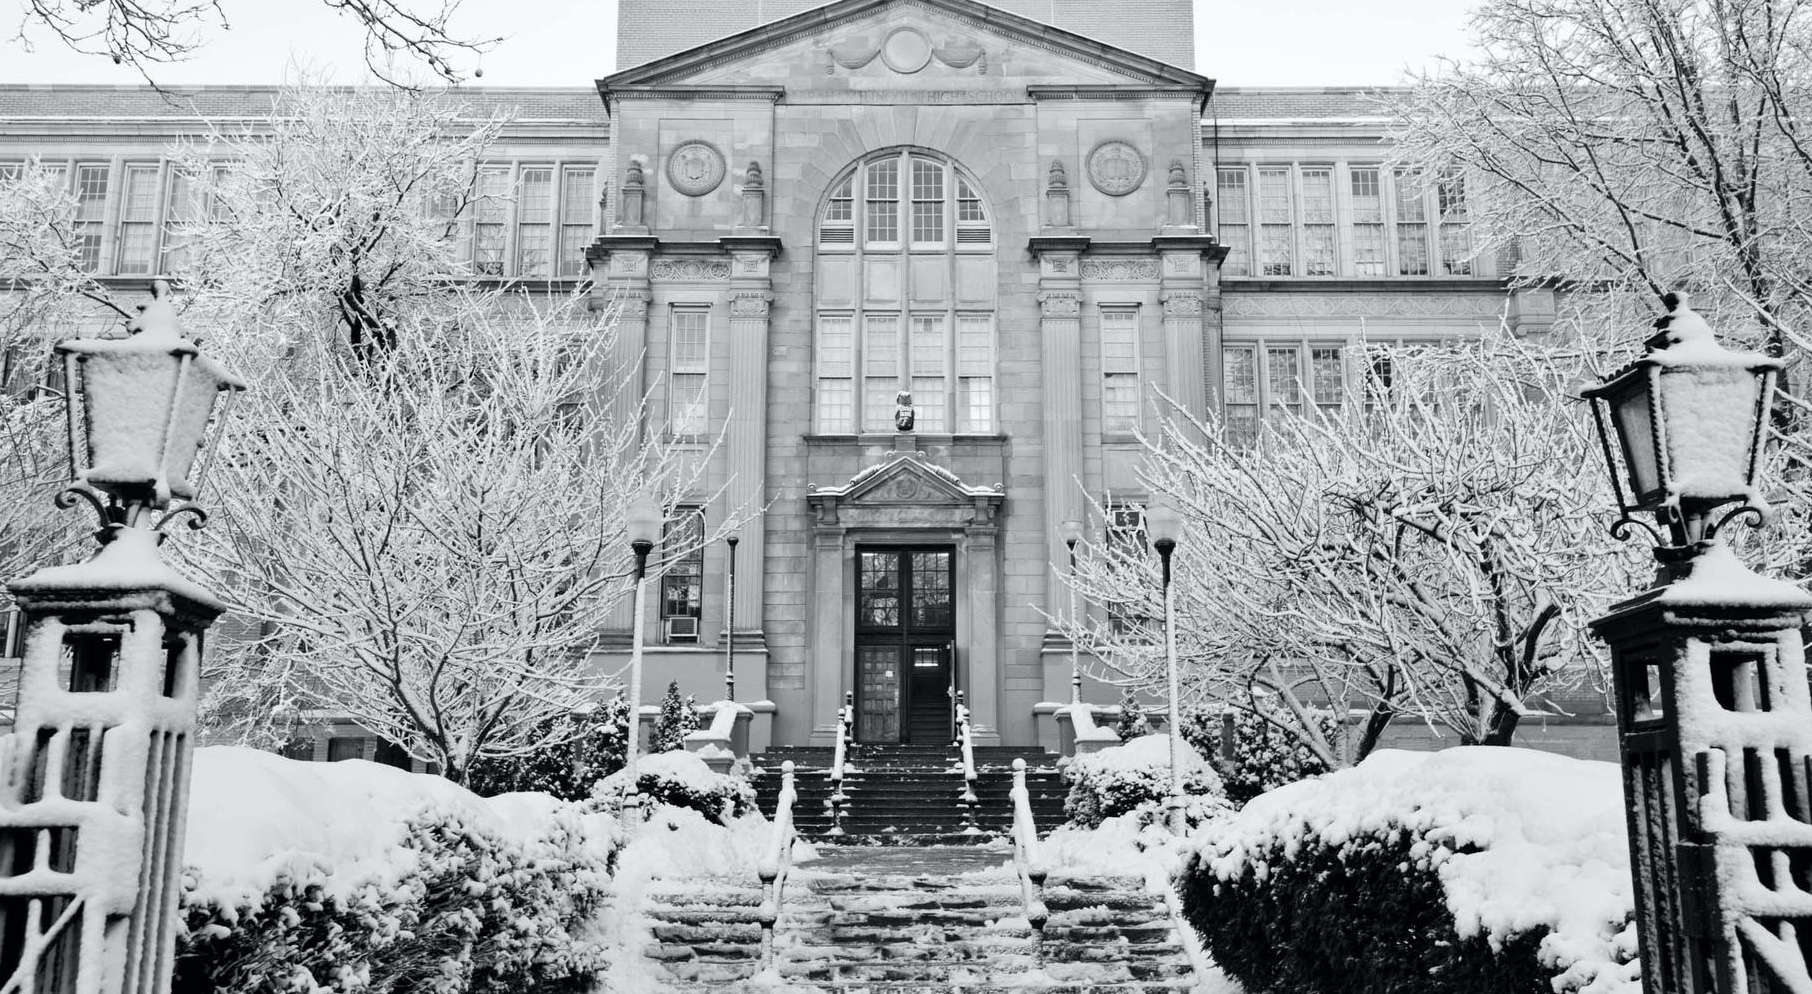 Abraham Lincoln High School Building Covering in Snow During the Winter.